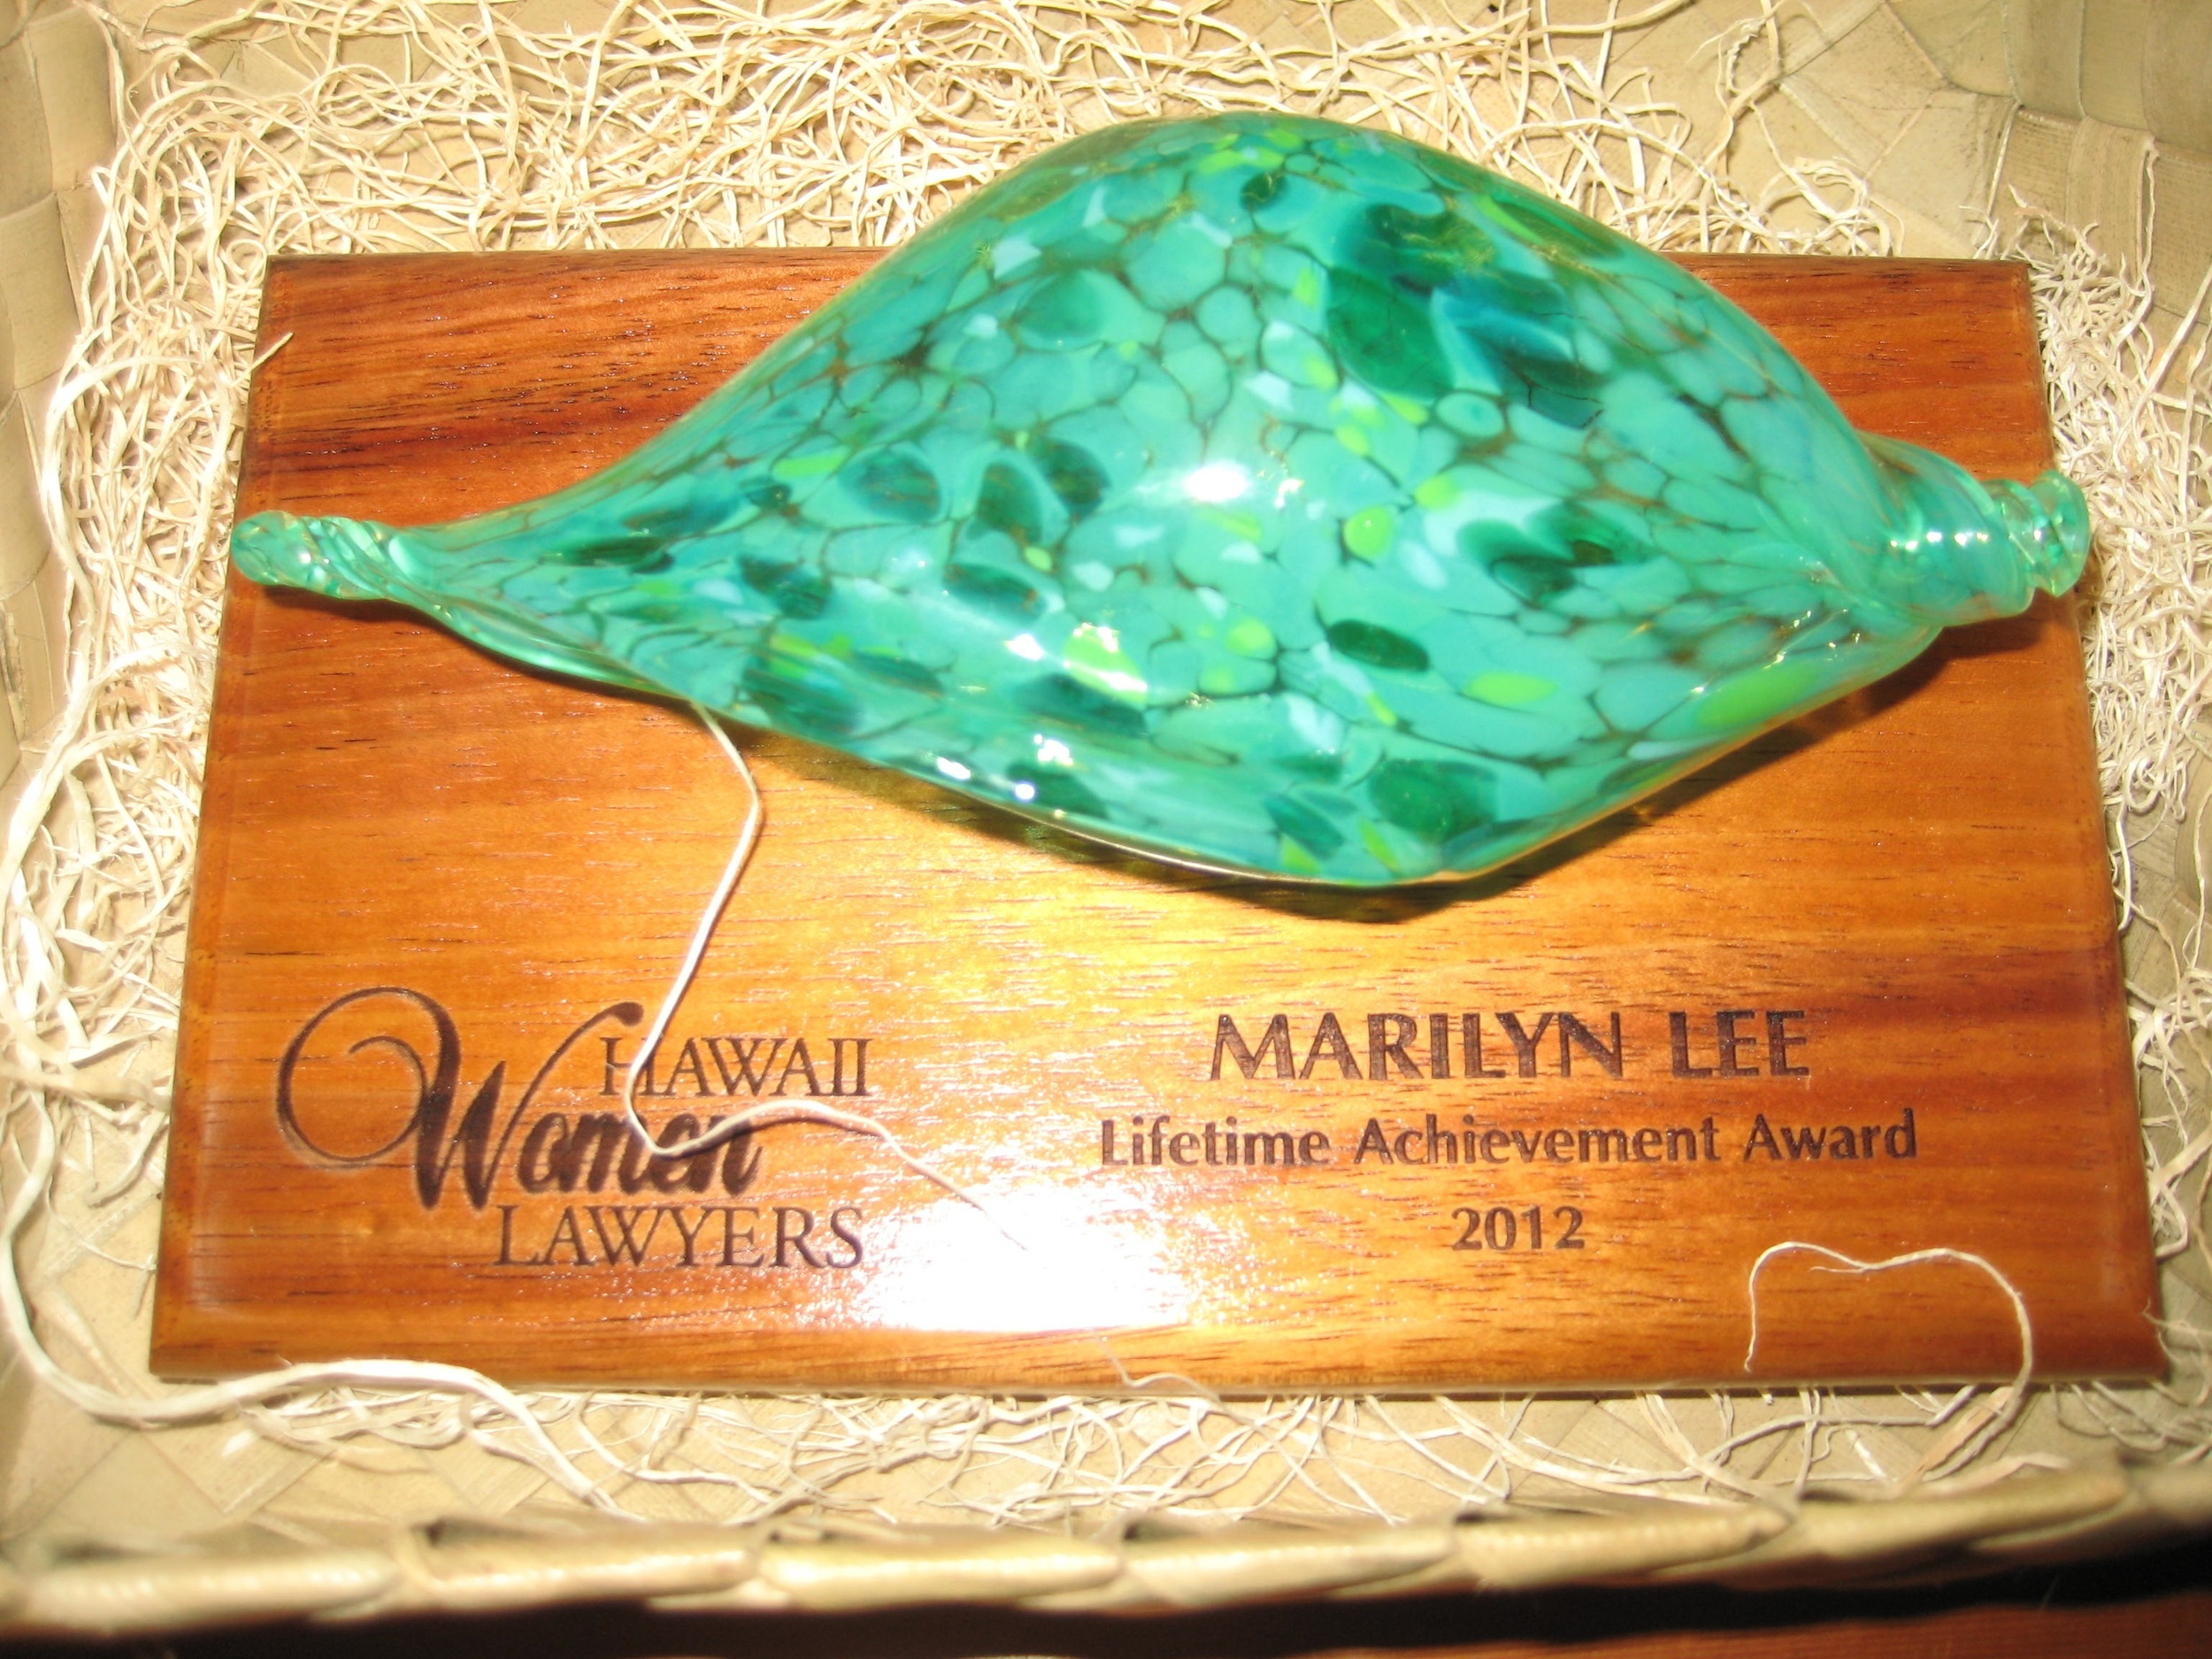 The Lifetime Achievement Award presented to me by the Hawaii Women Lawyers in April 2013.